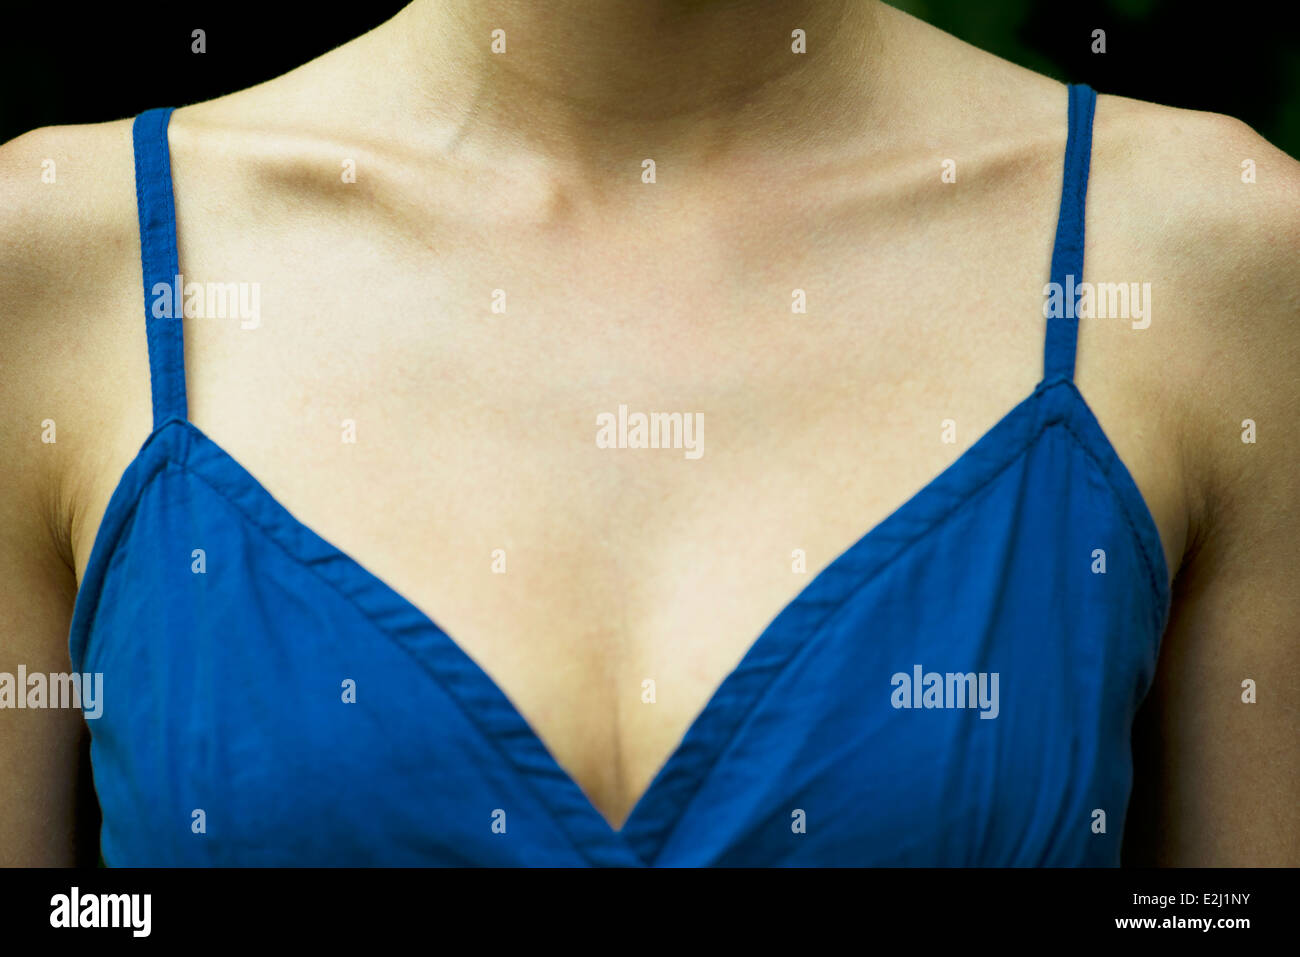 Close-up of woman's chest - Stock Image